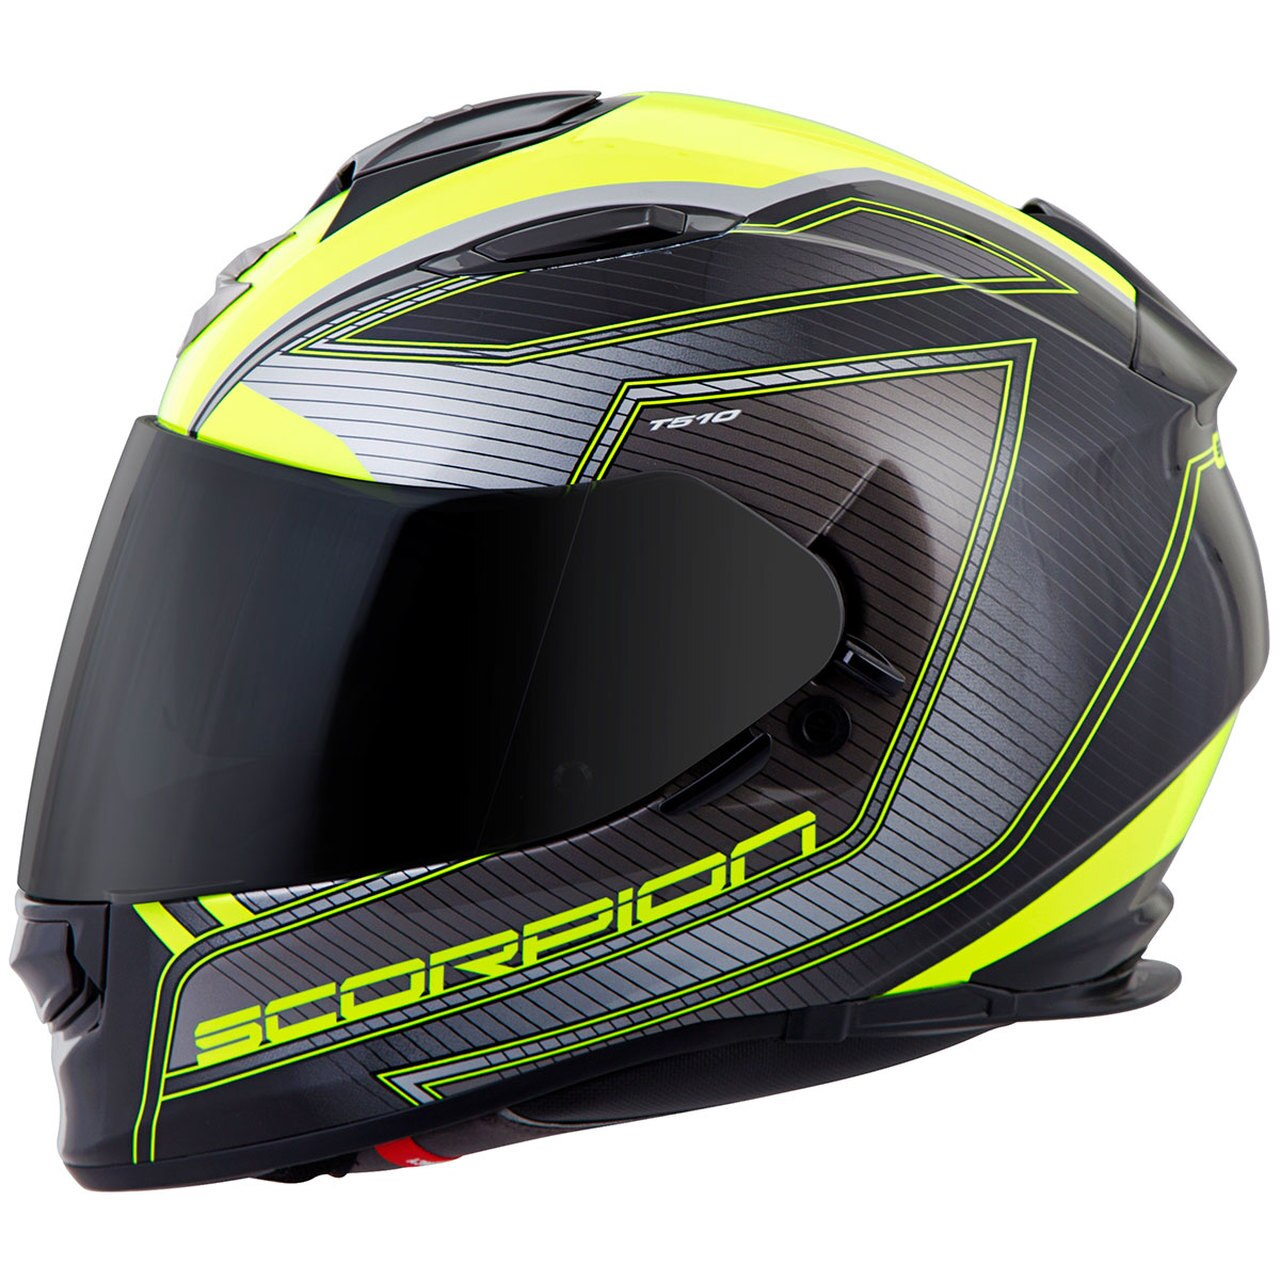 EXO-T510 FULL-FACE TARMAC NEONBLACK side